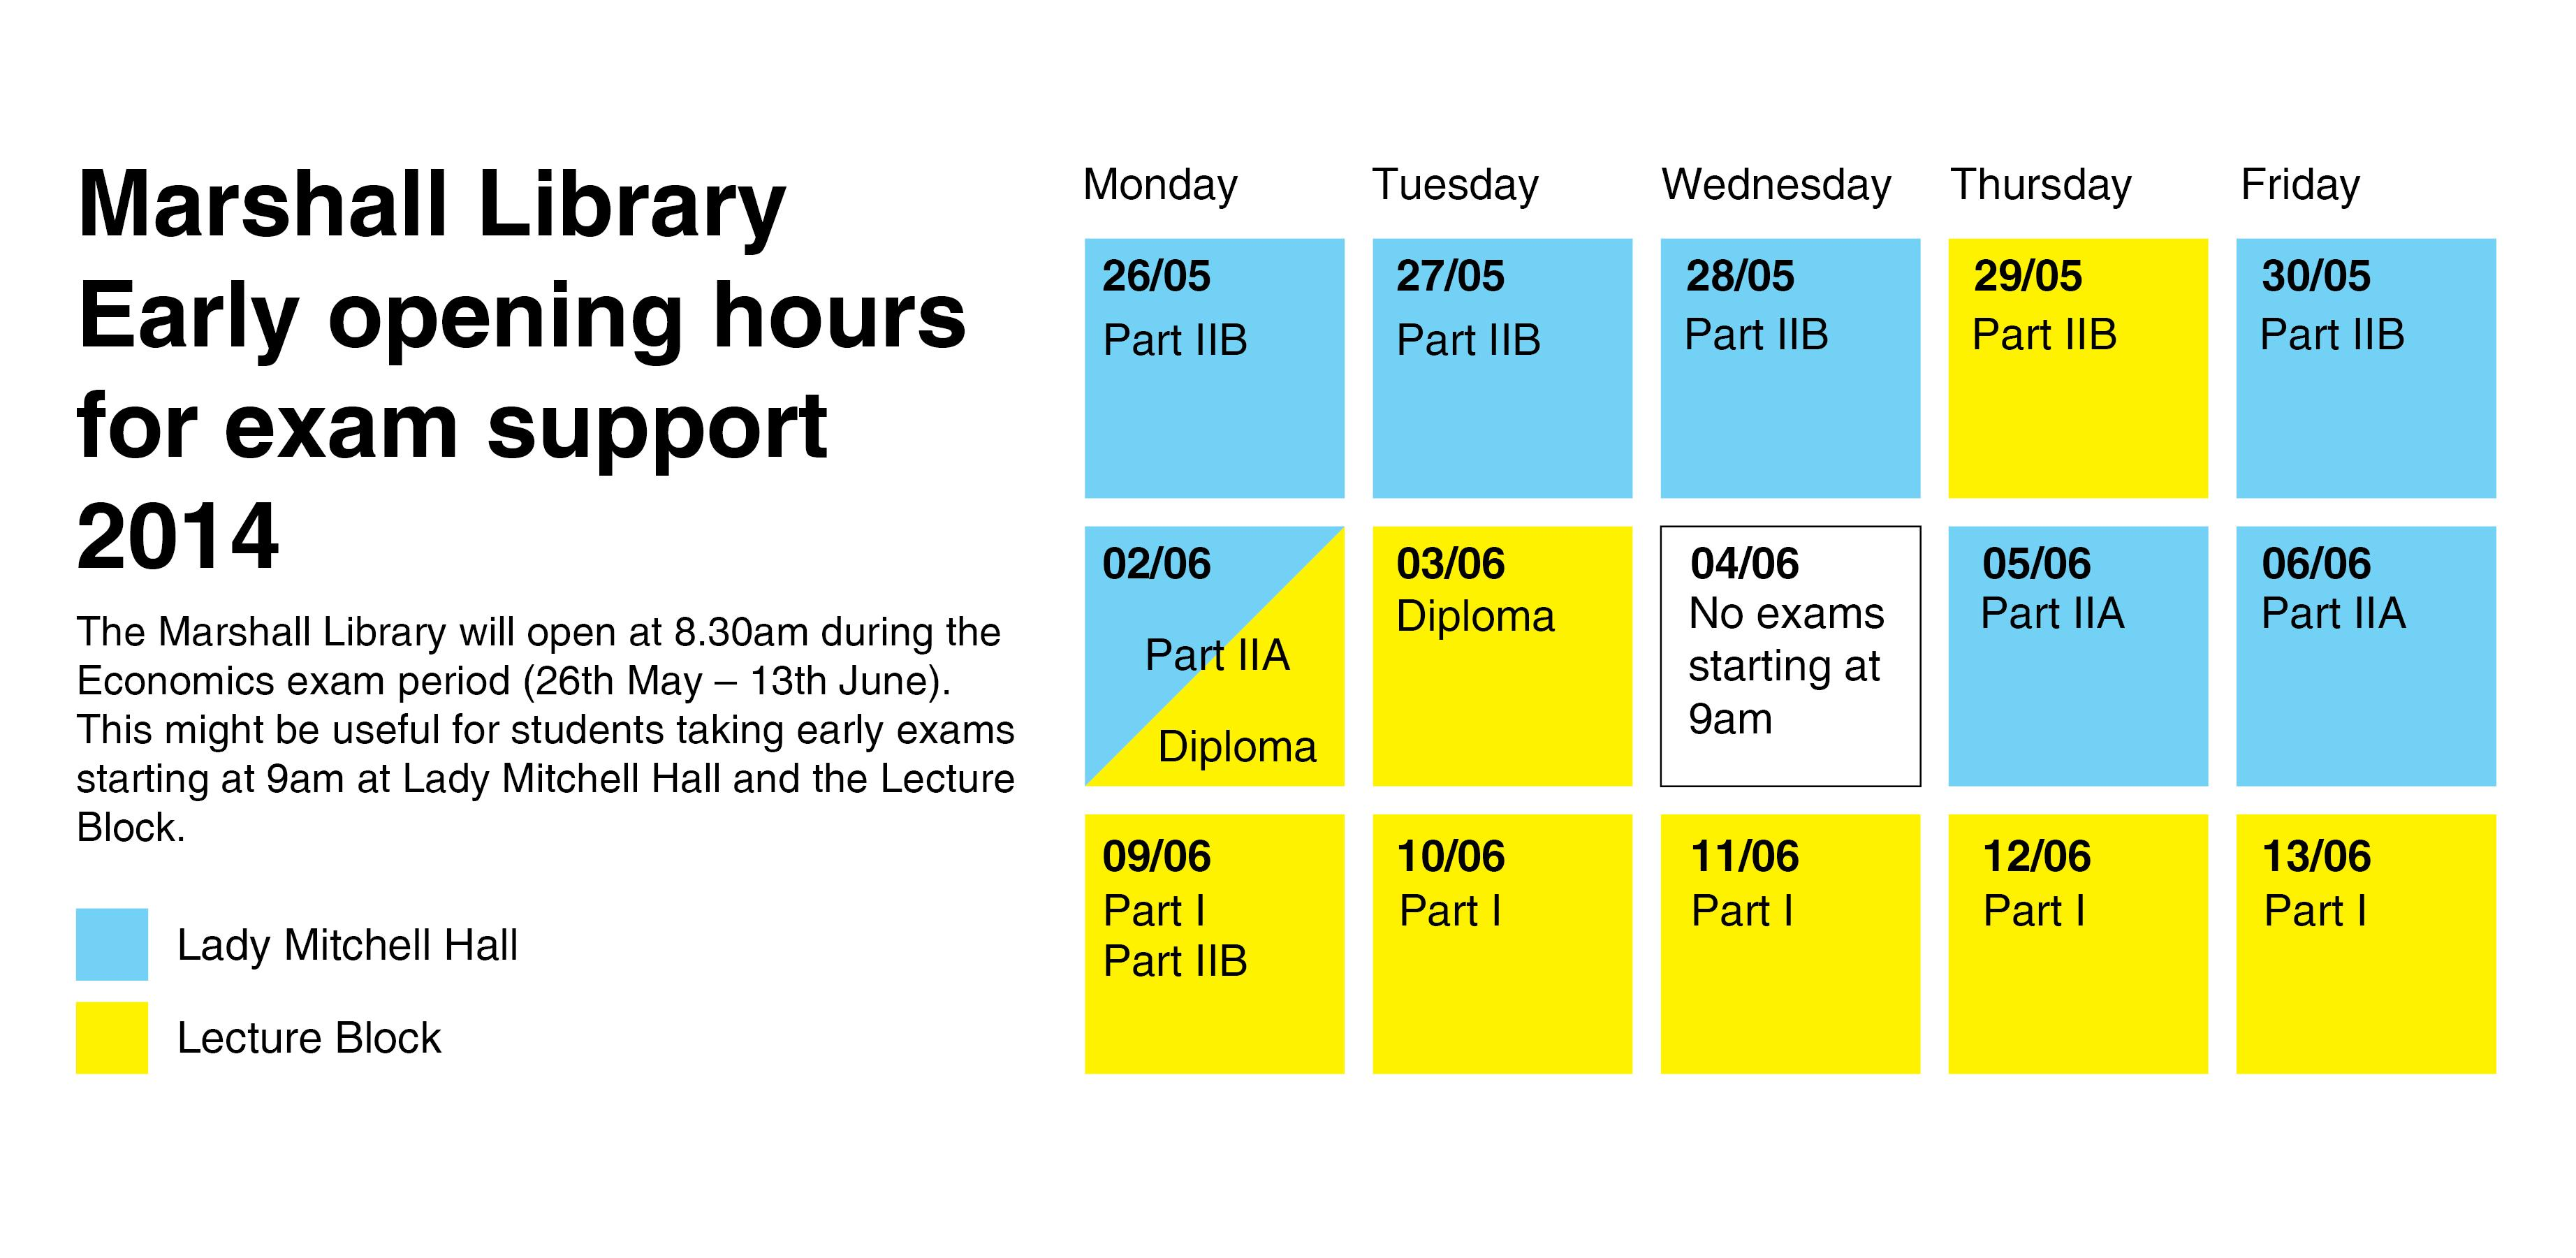 Exam Support - opening Mon-Fri: 8:30 between 26 May 2014 and 13 June 2014